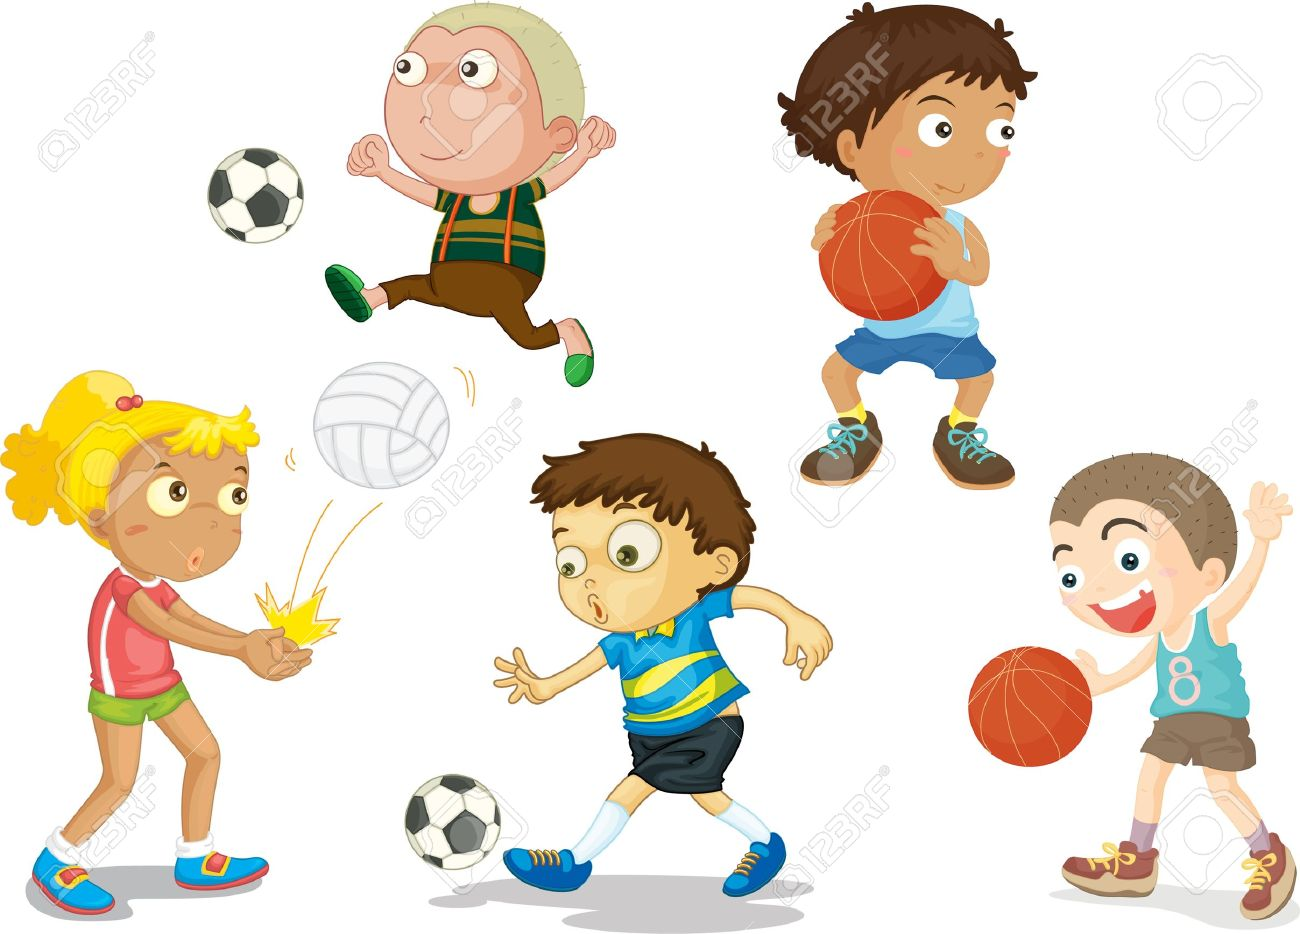 1300x934 Sports Cartoon Clipart 101 Clip Art